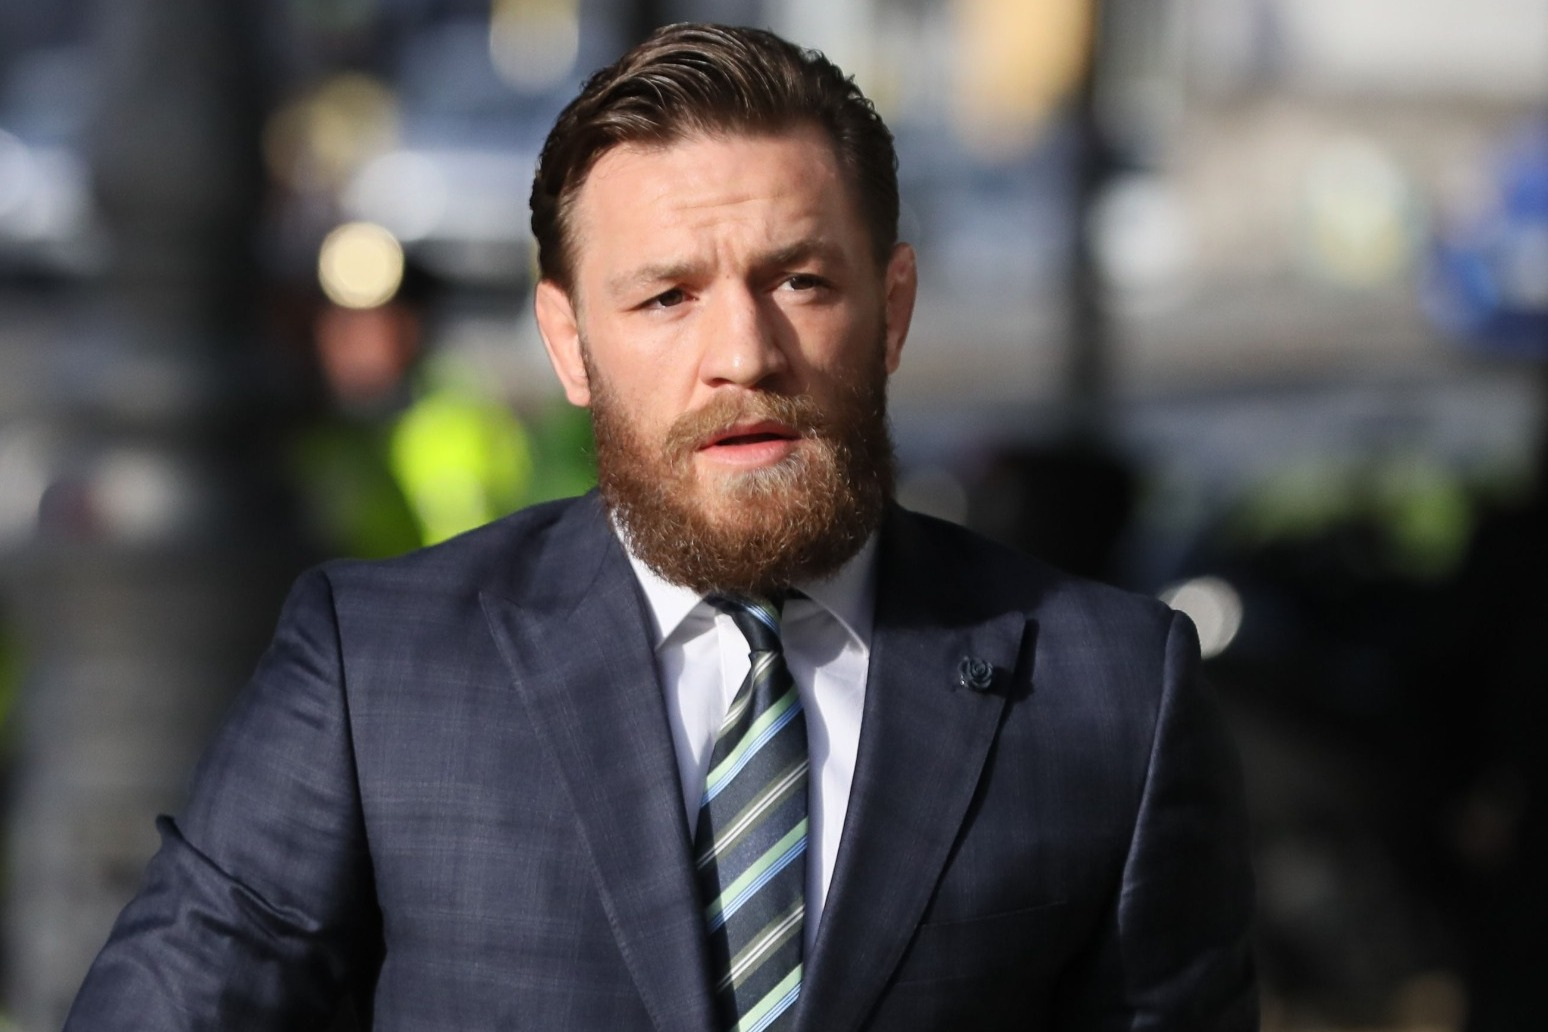 CONOR MCGREGOR DUE IN COURT TO FACE ASSAULT CHARGE